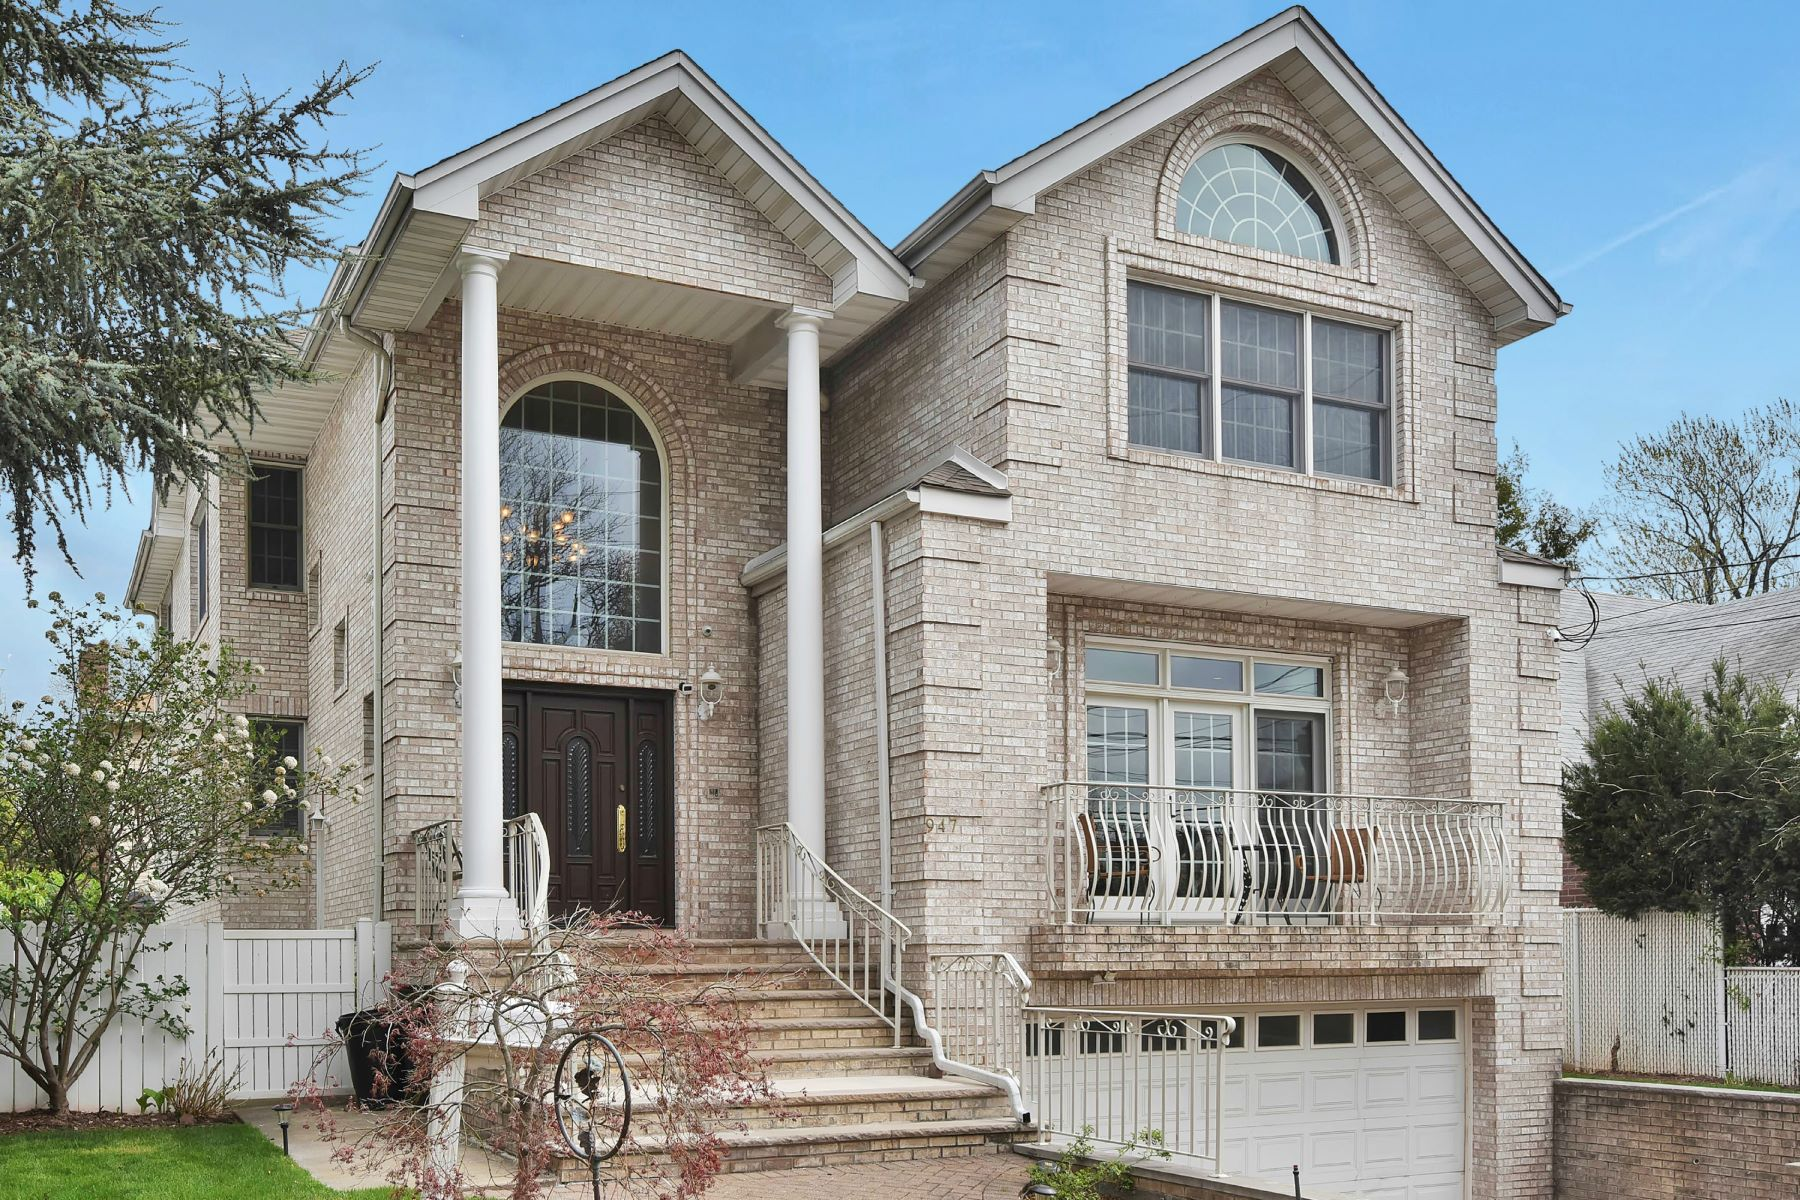 Single Family Home for Sale at Stunning Custom Colonial! 947 Linden Avenue Ridgefield, New Jersey 07657 United States